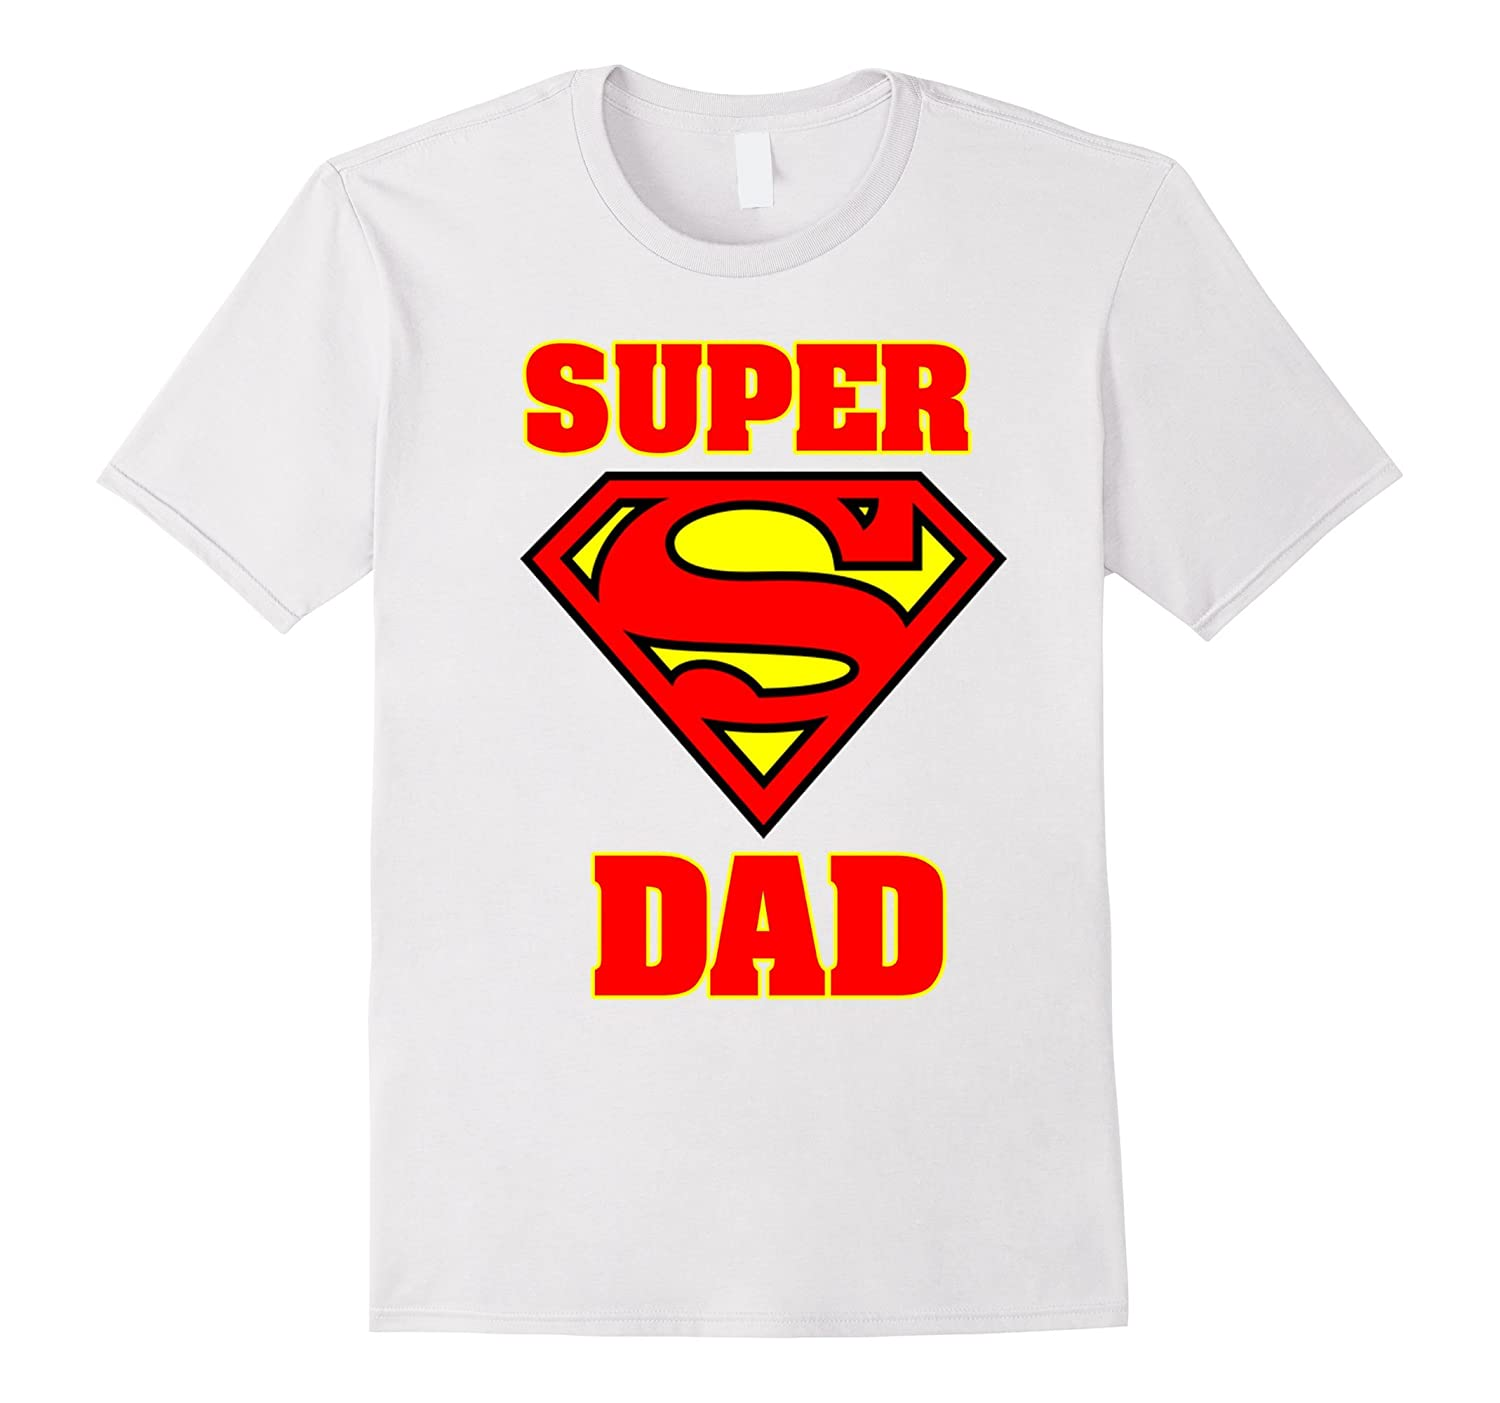 694bd0e8 T-Shirts SUPER DAD T-Shirt Birthday shirt Fathers Day Gifts for Pap Funny  Shirt